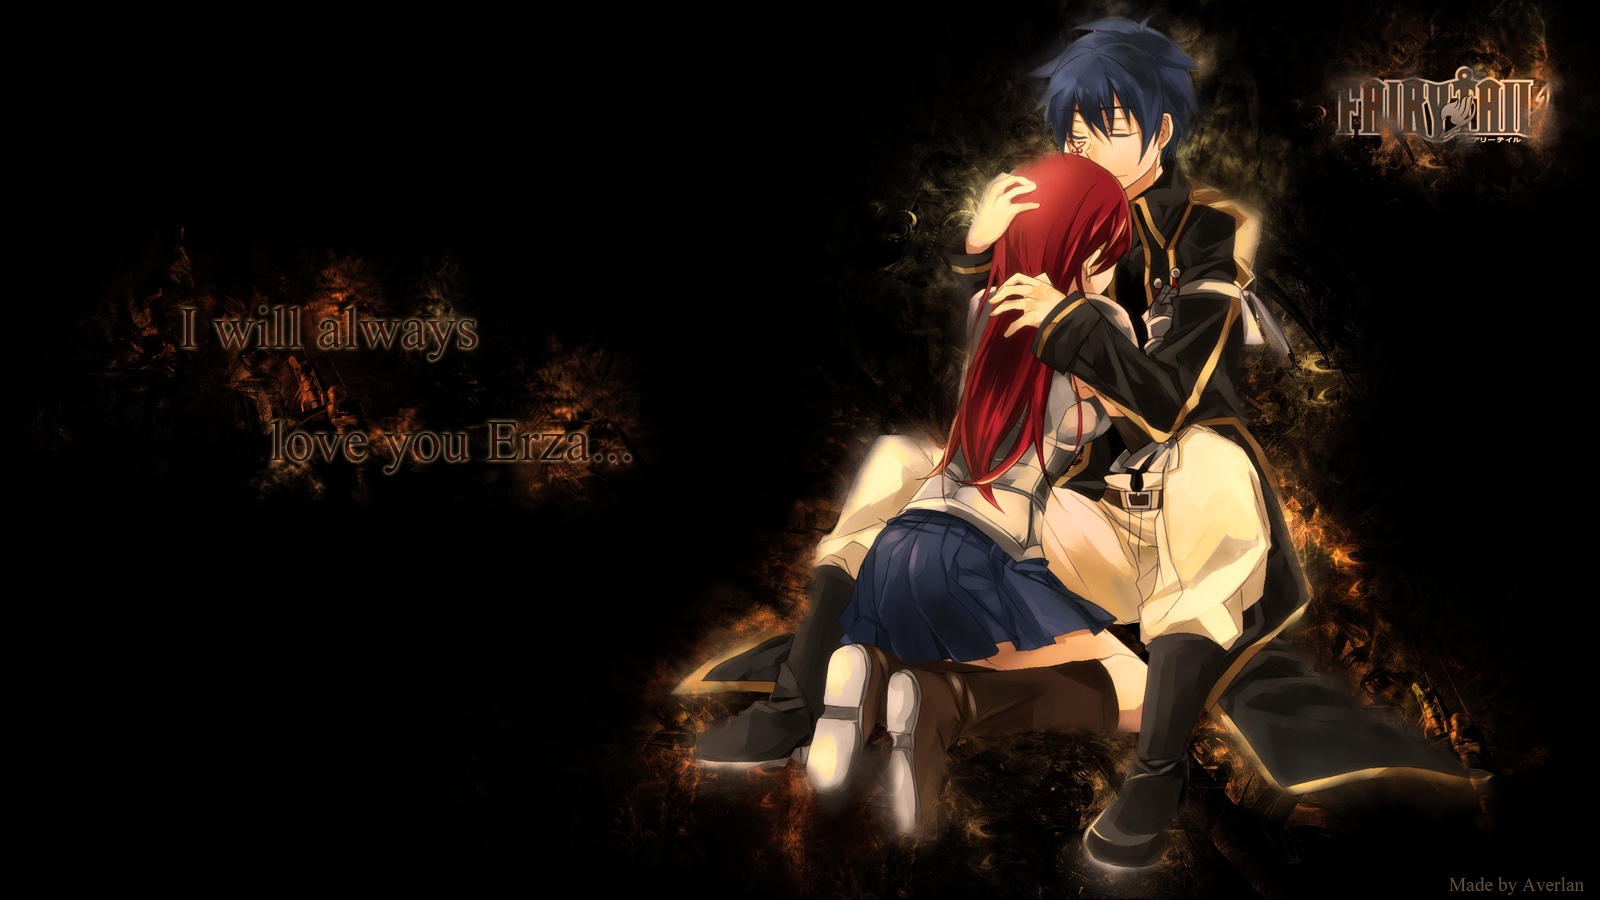 Fairy Tail Wallpaper by Averlan 1600x900